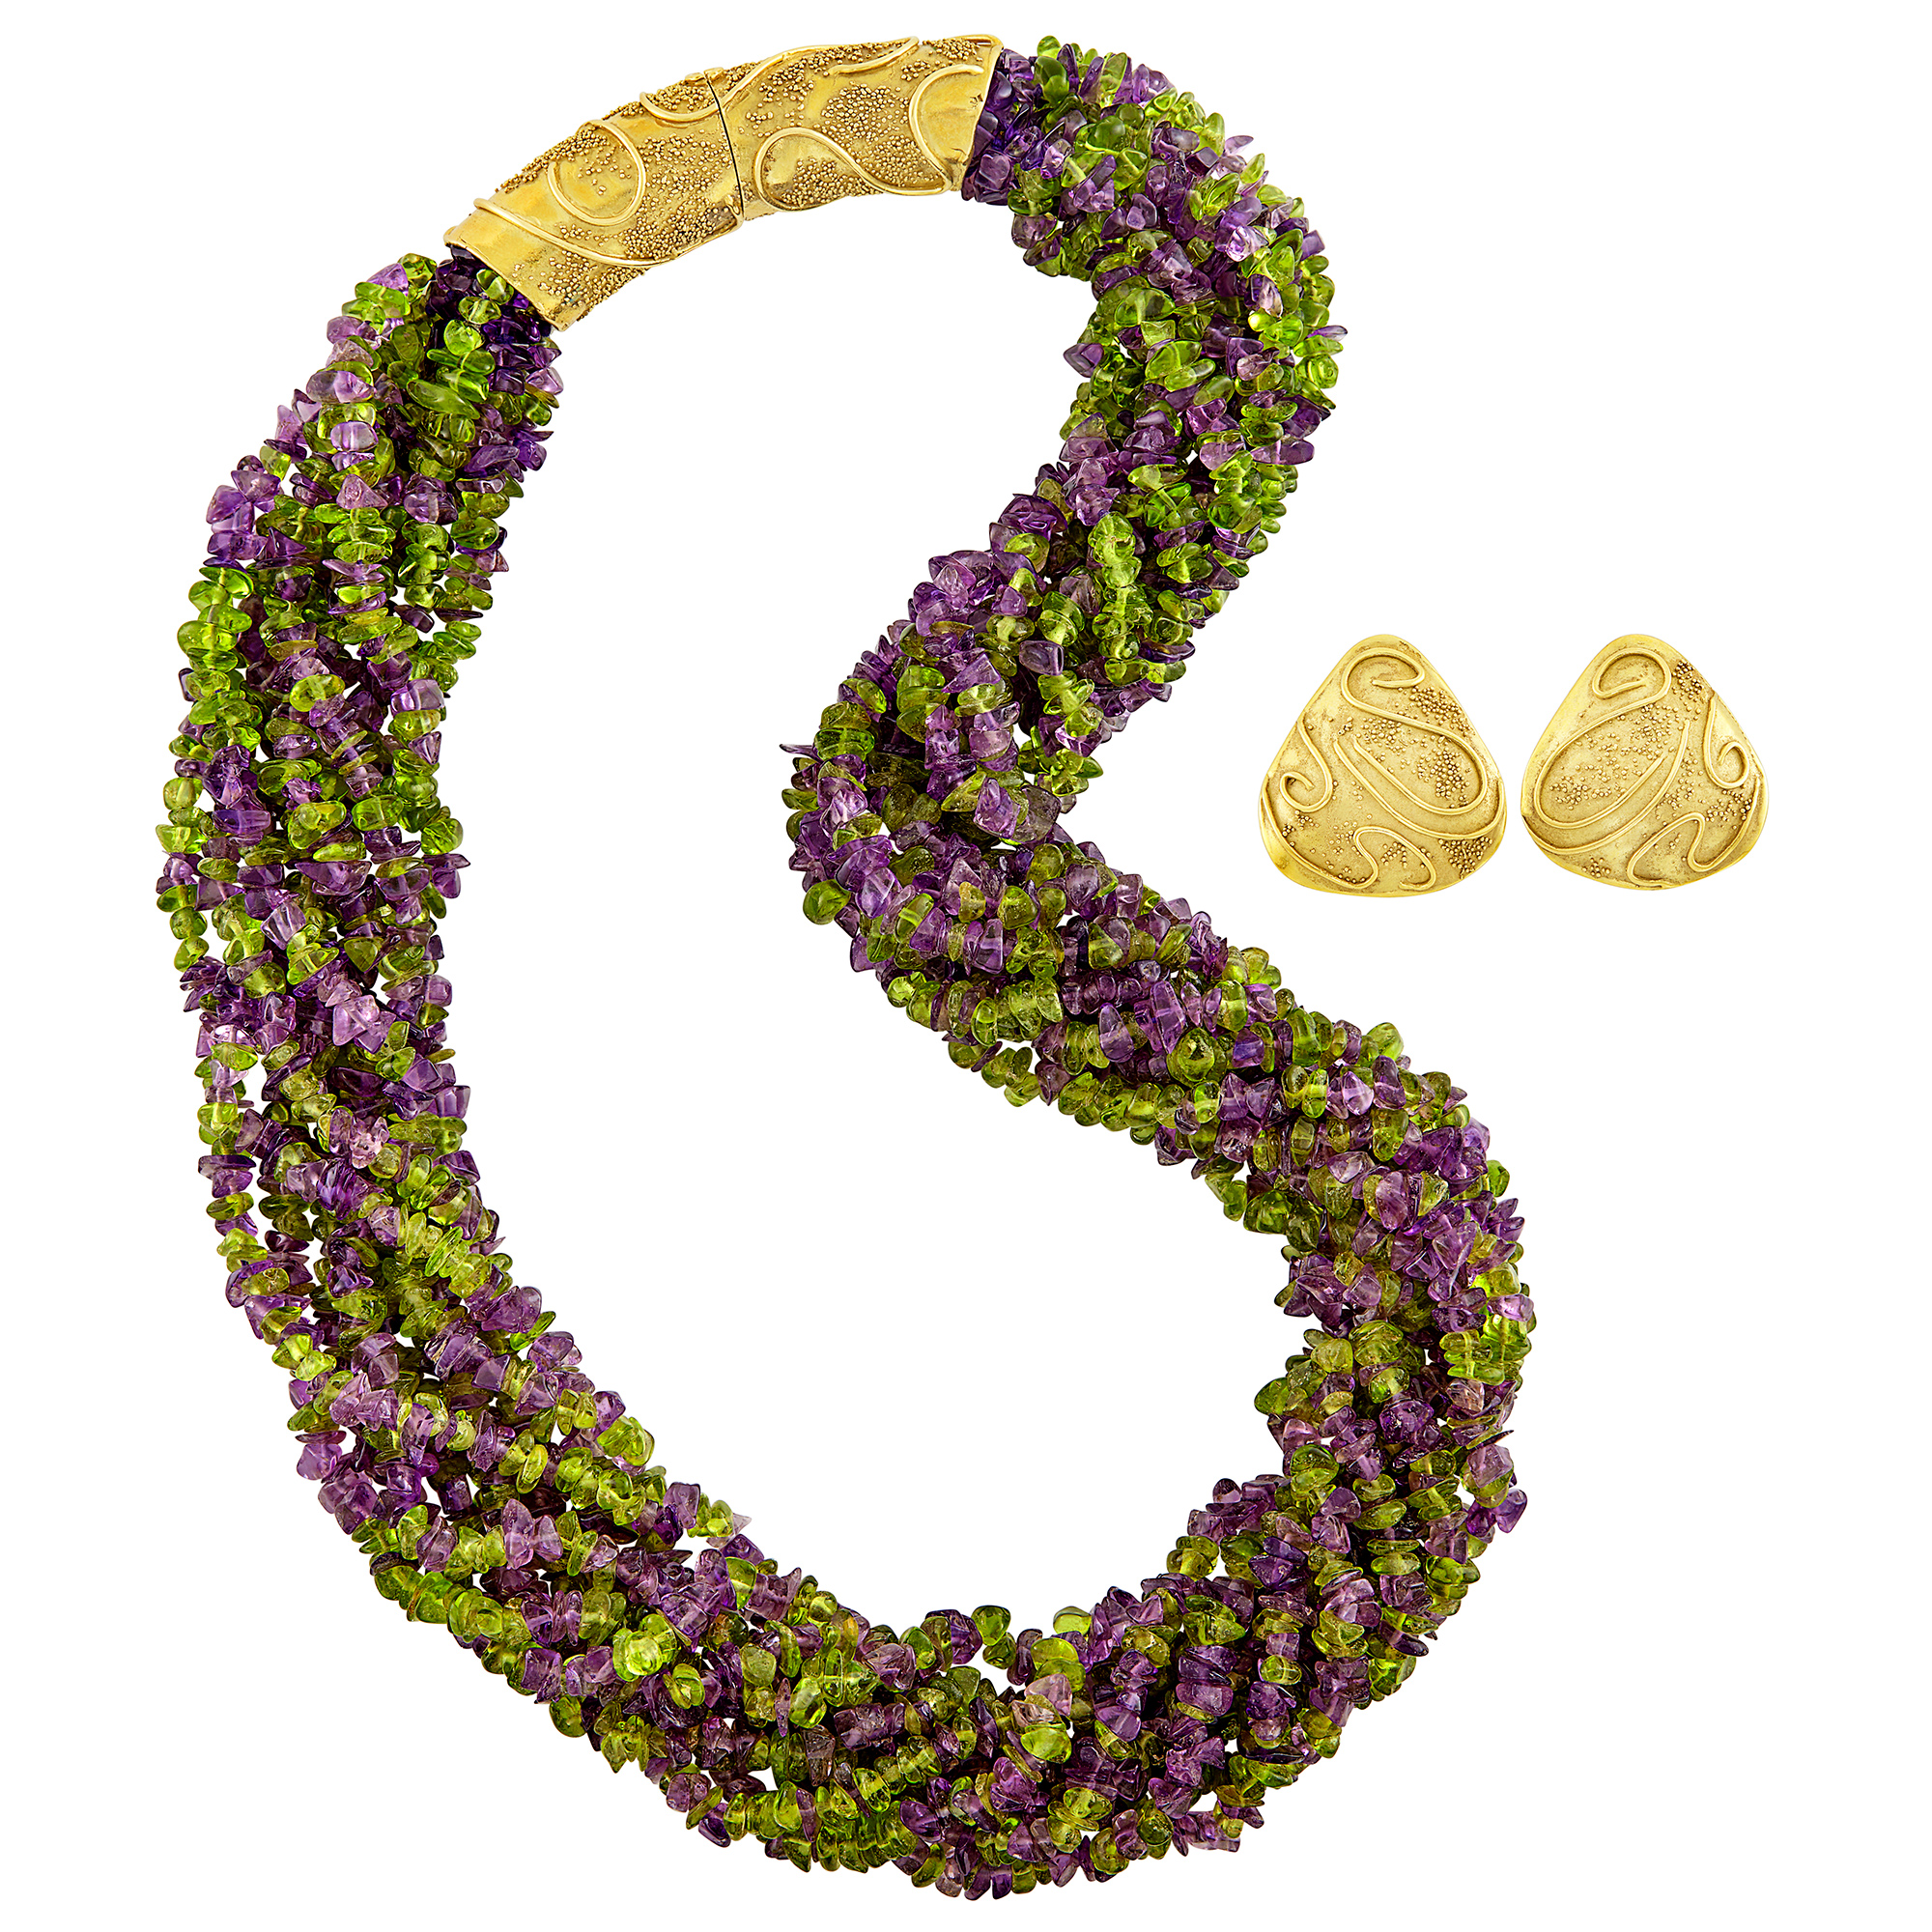 Lot image - Multistrand Peridot and Amethyst Bead Torsade Necklace with Gold Clasp and Pair of Gold Earrings, Elizabeth Gage